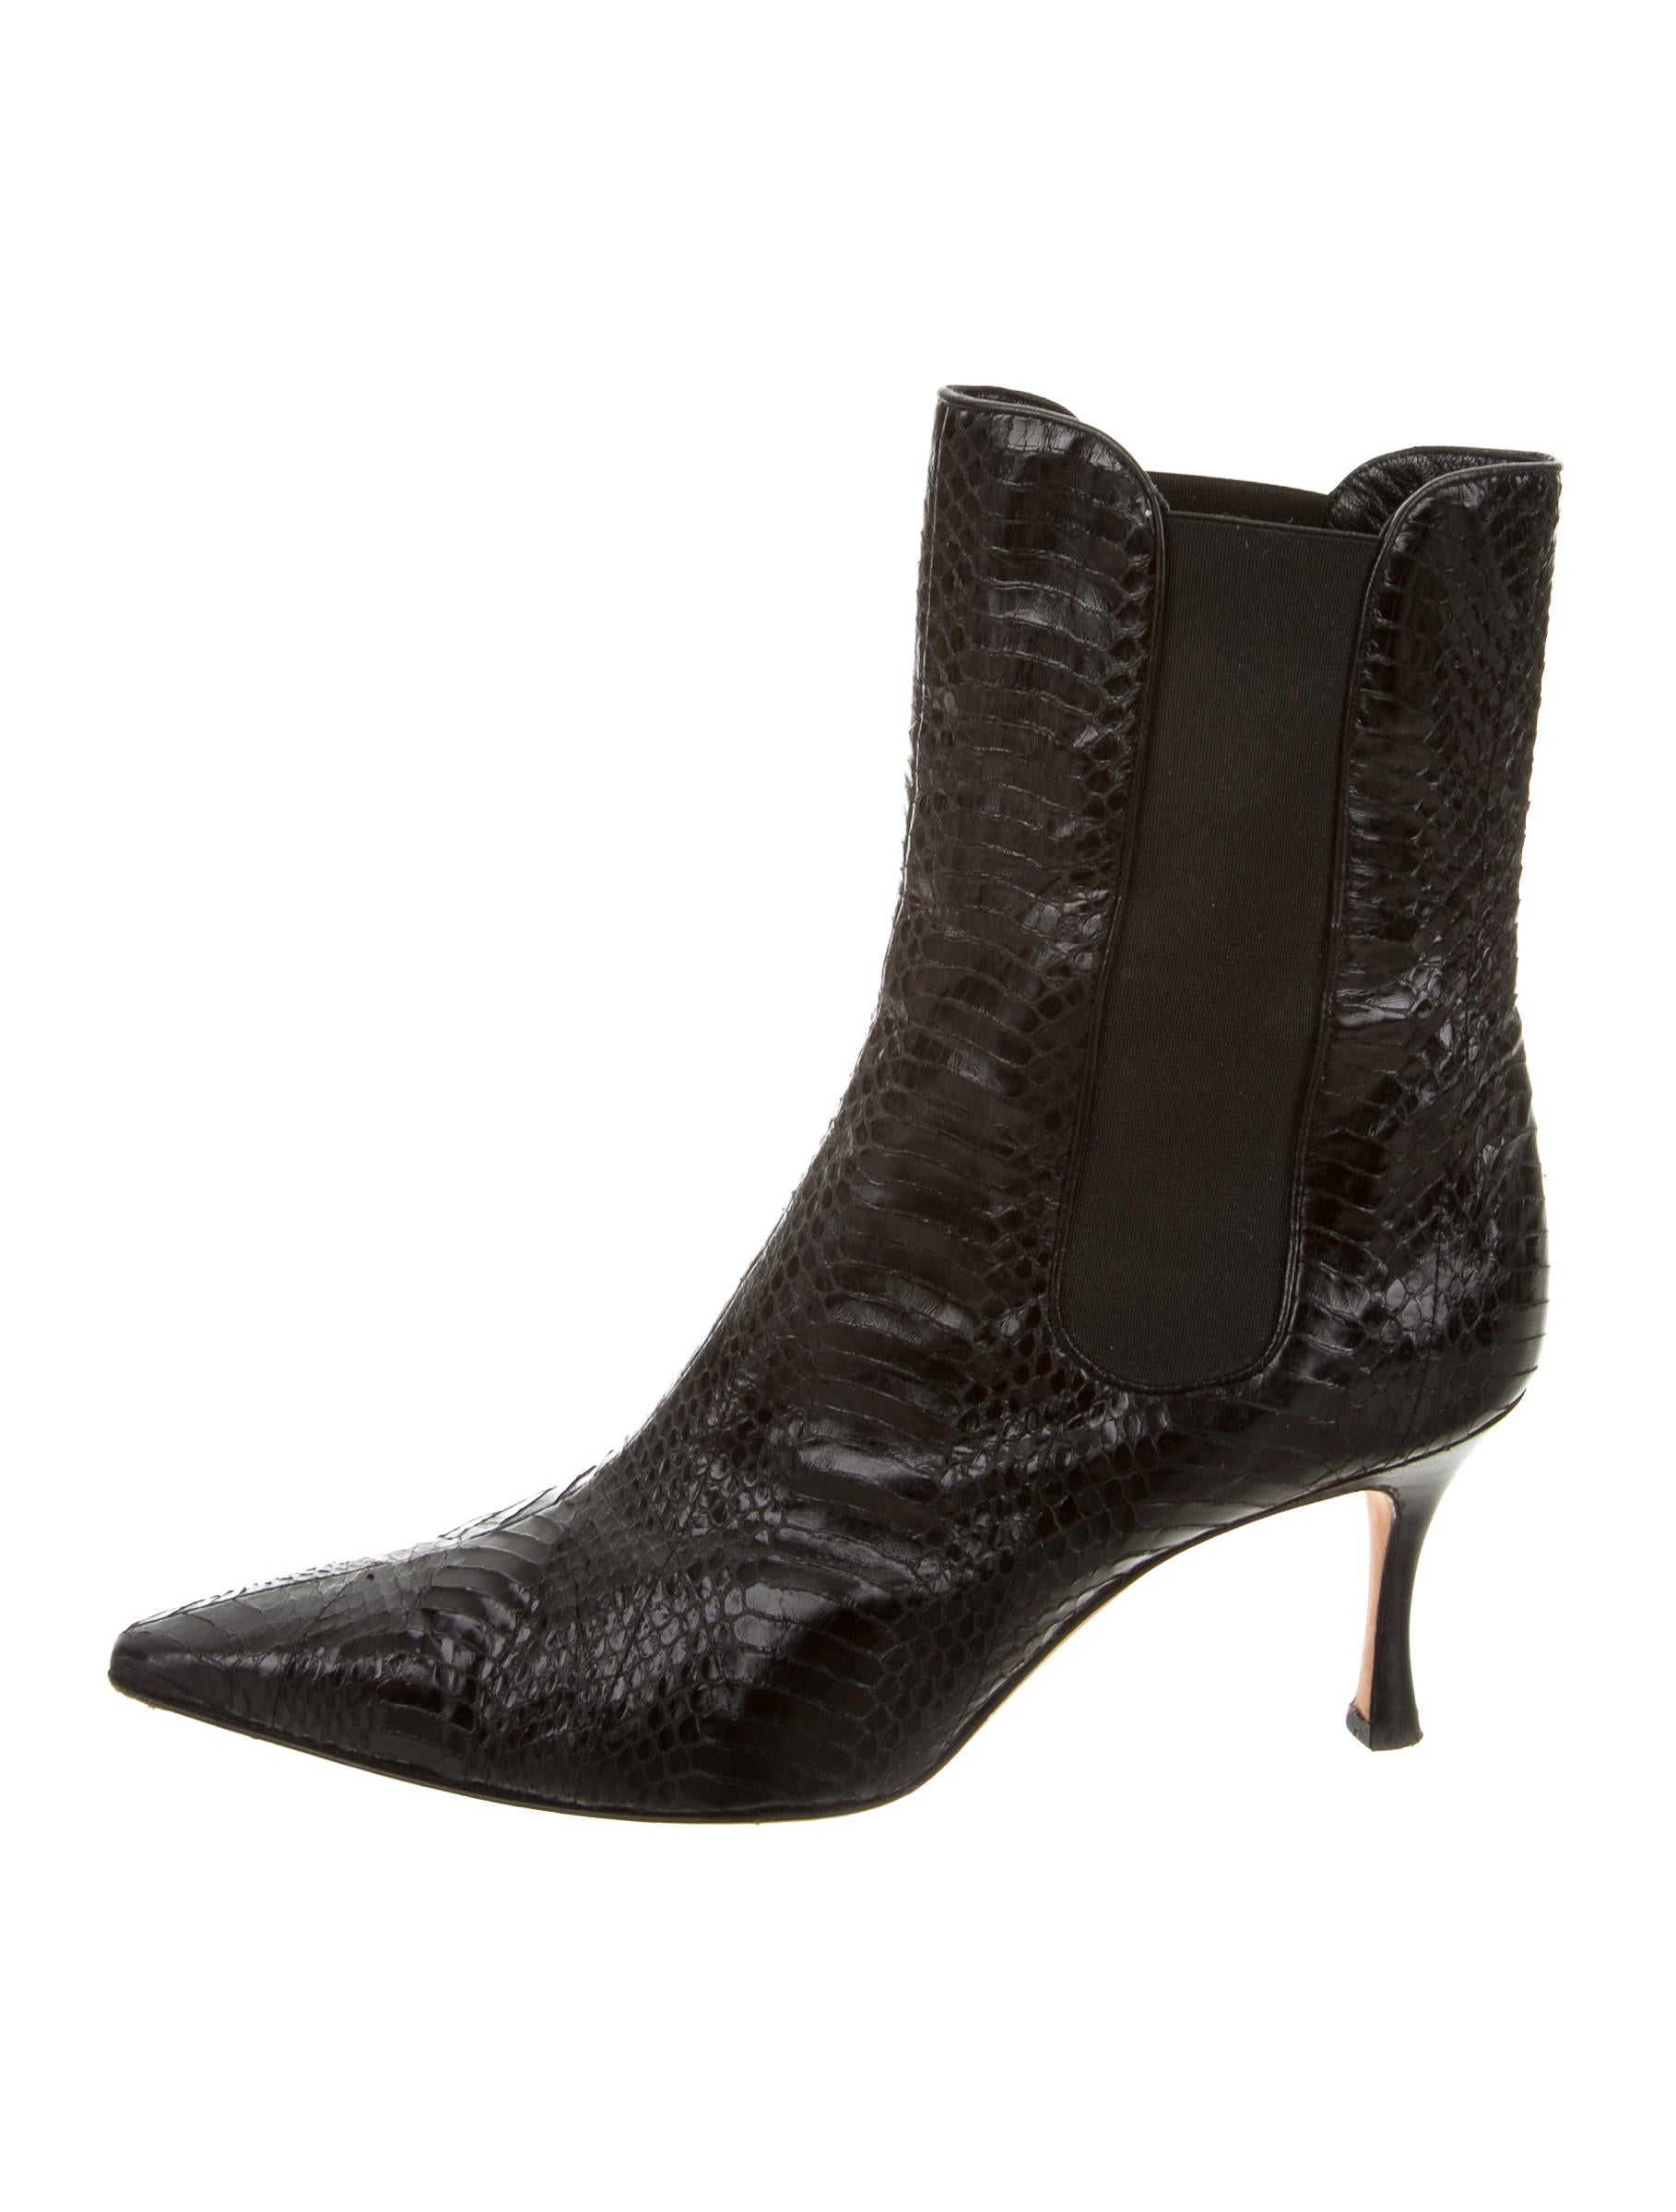 Manolo Blahnik Snakeskin Pointed-Toe Ankle Boots - Shoes ...